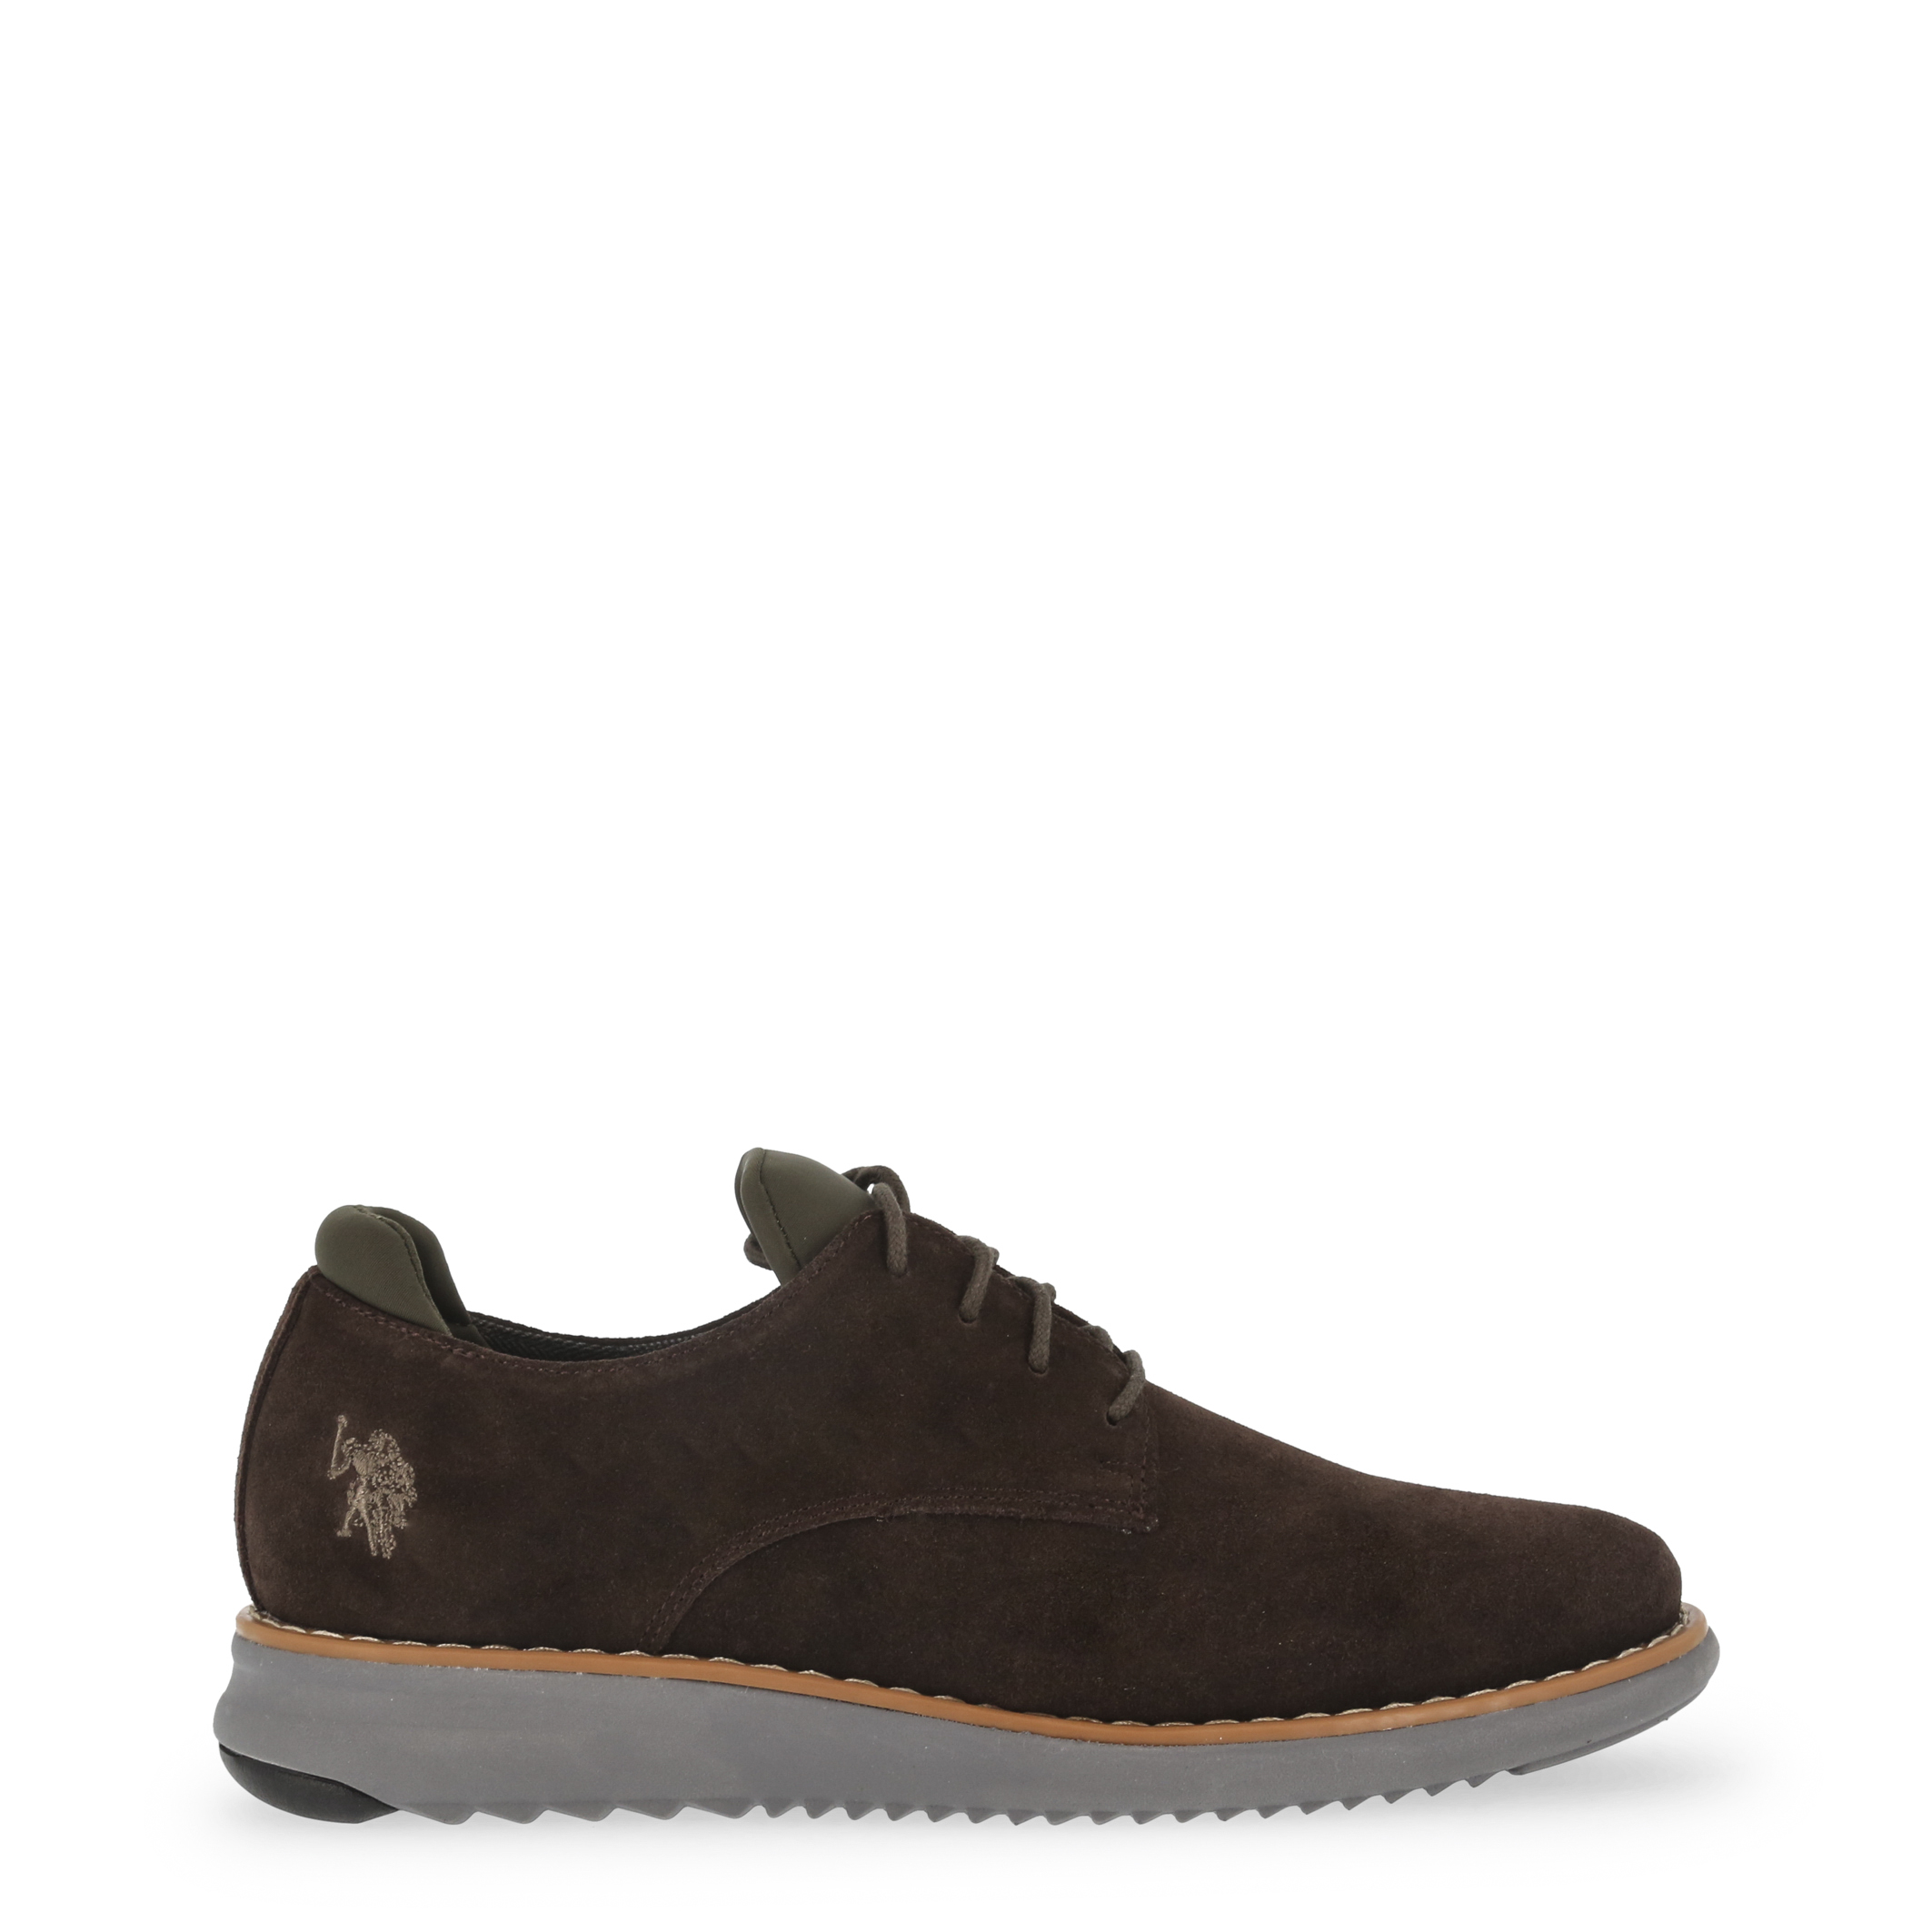 U-S-Polo-Assn-Men-039-s-Lace-Up-In-Brown-44